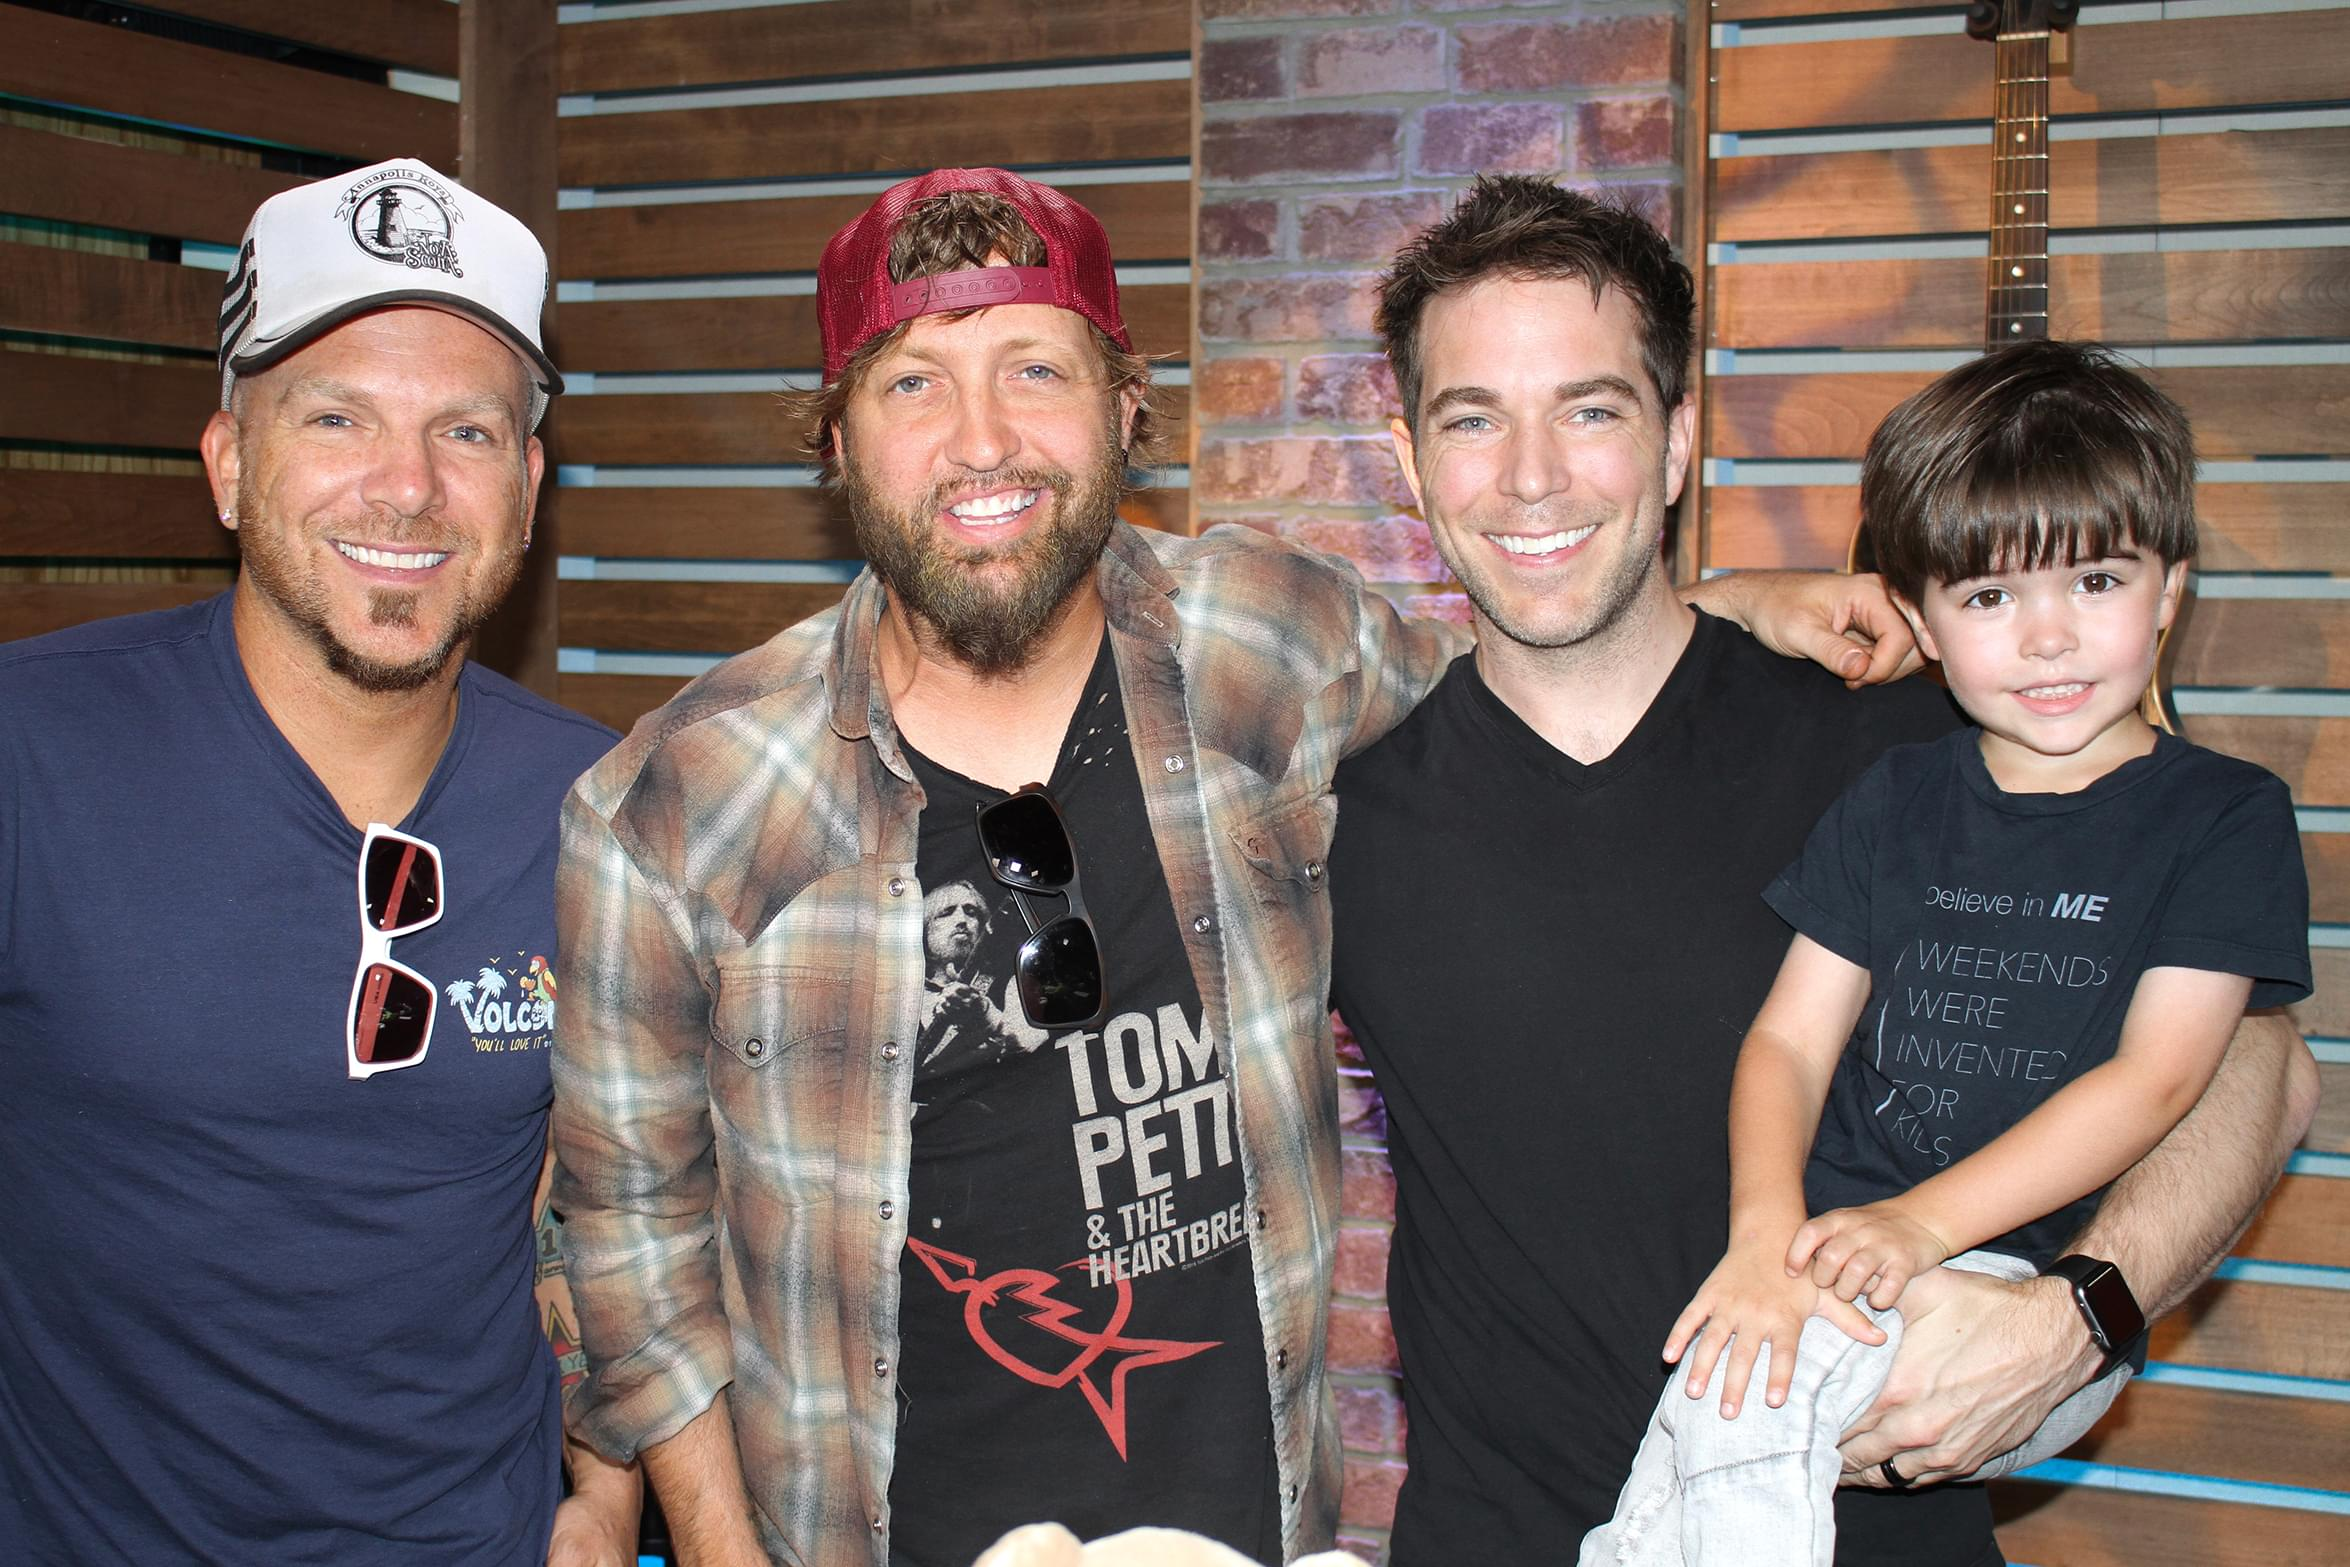 LOCASH Donates $1,000 to Rally Around Radley Diaper Drive, Plays Diaper Games, Talks New Music & MORE